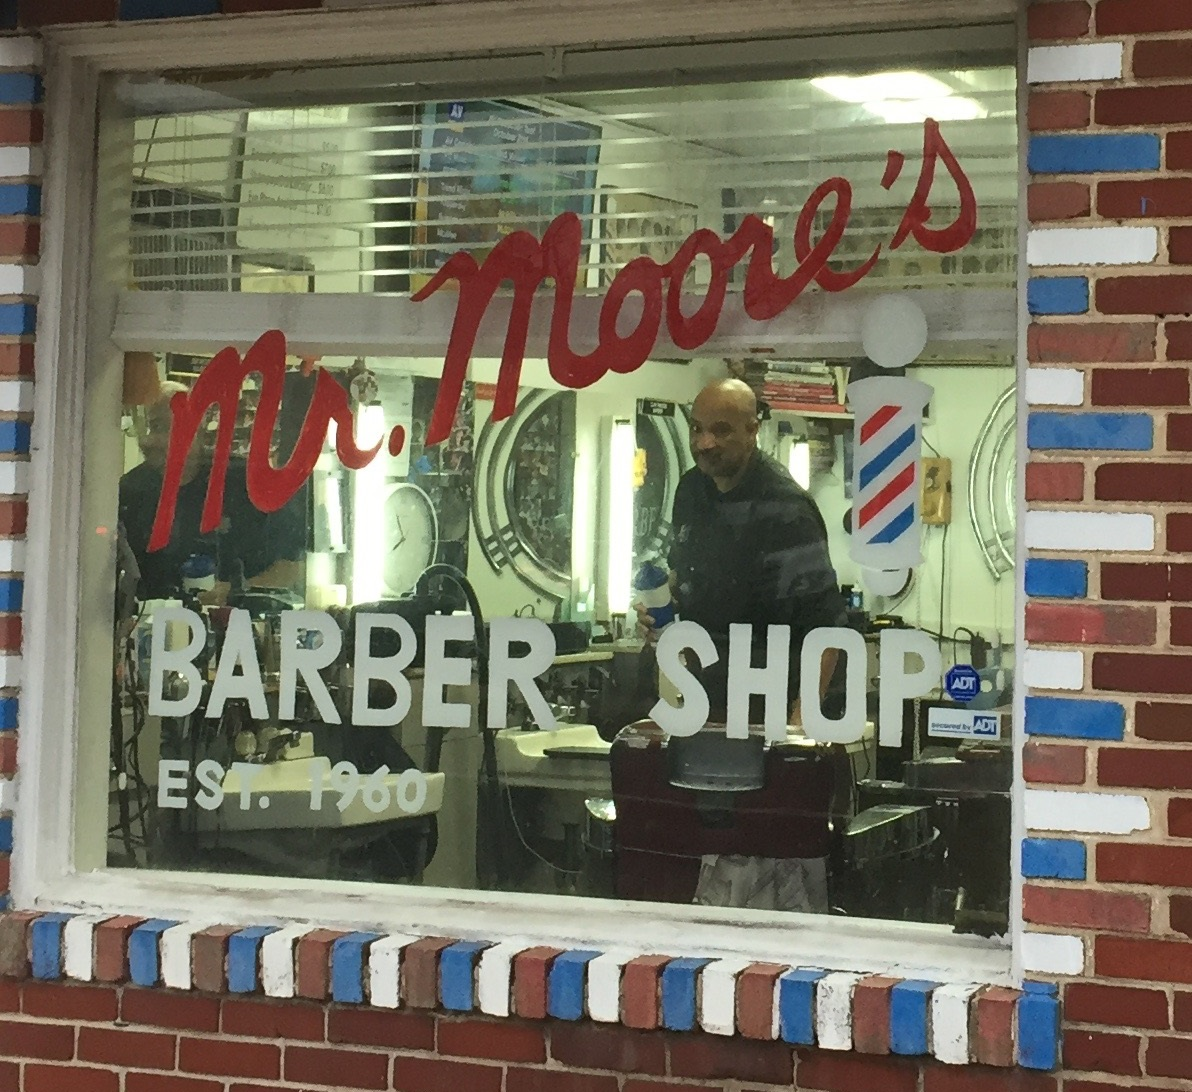 Moore's Barber Shop